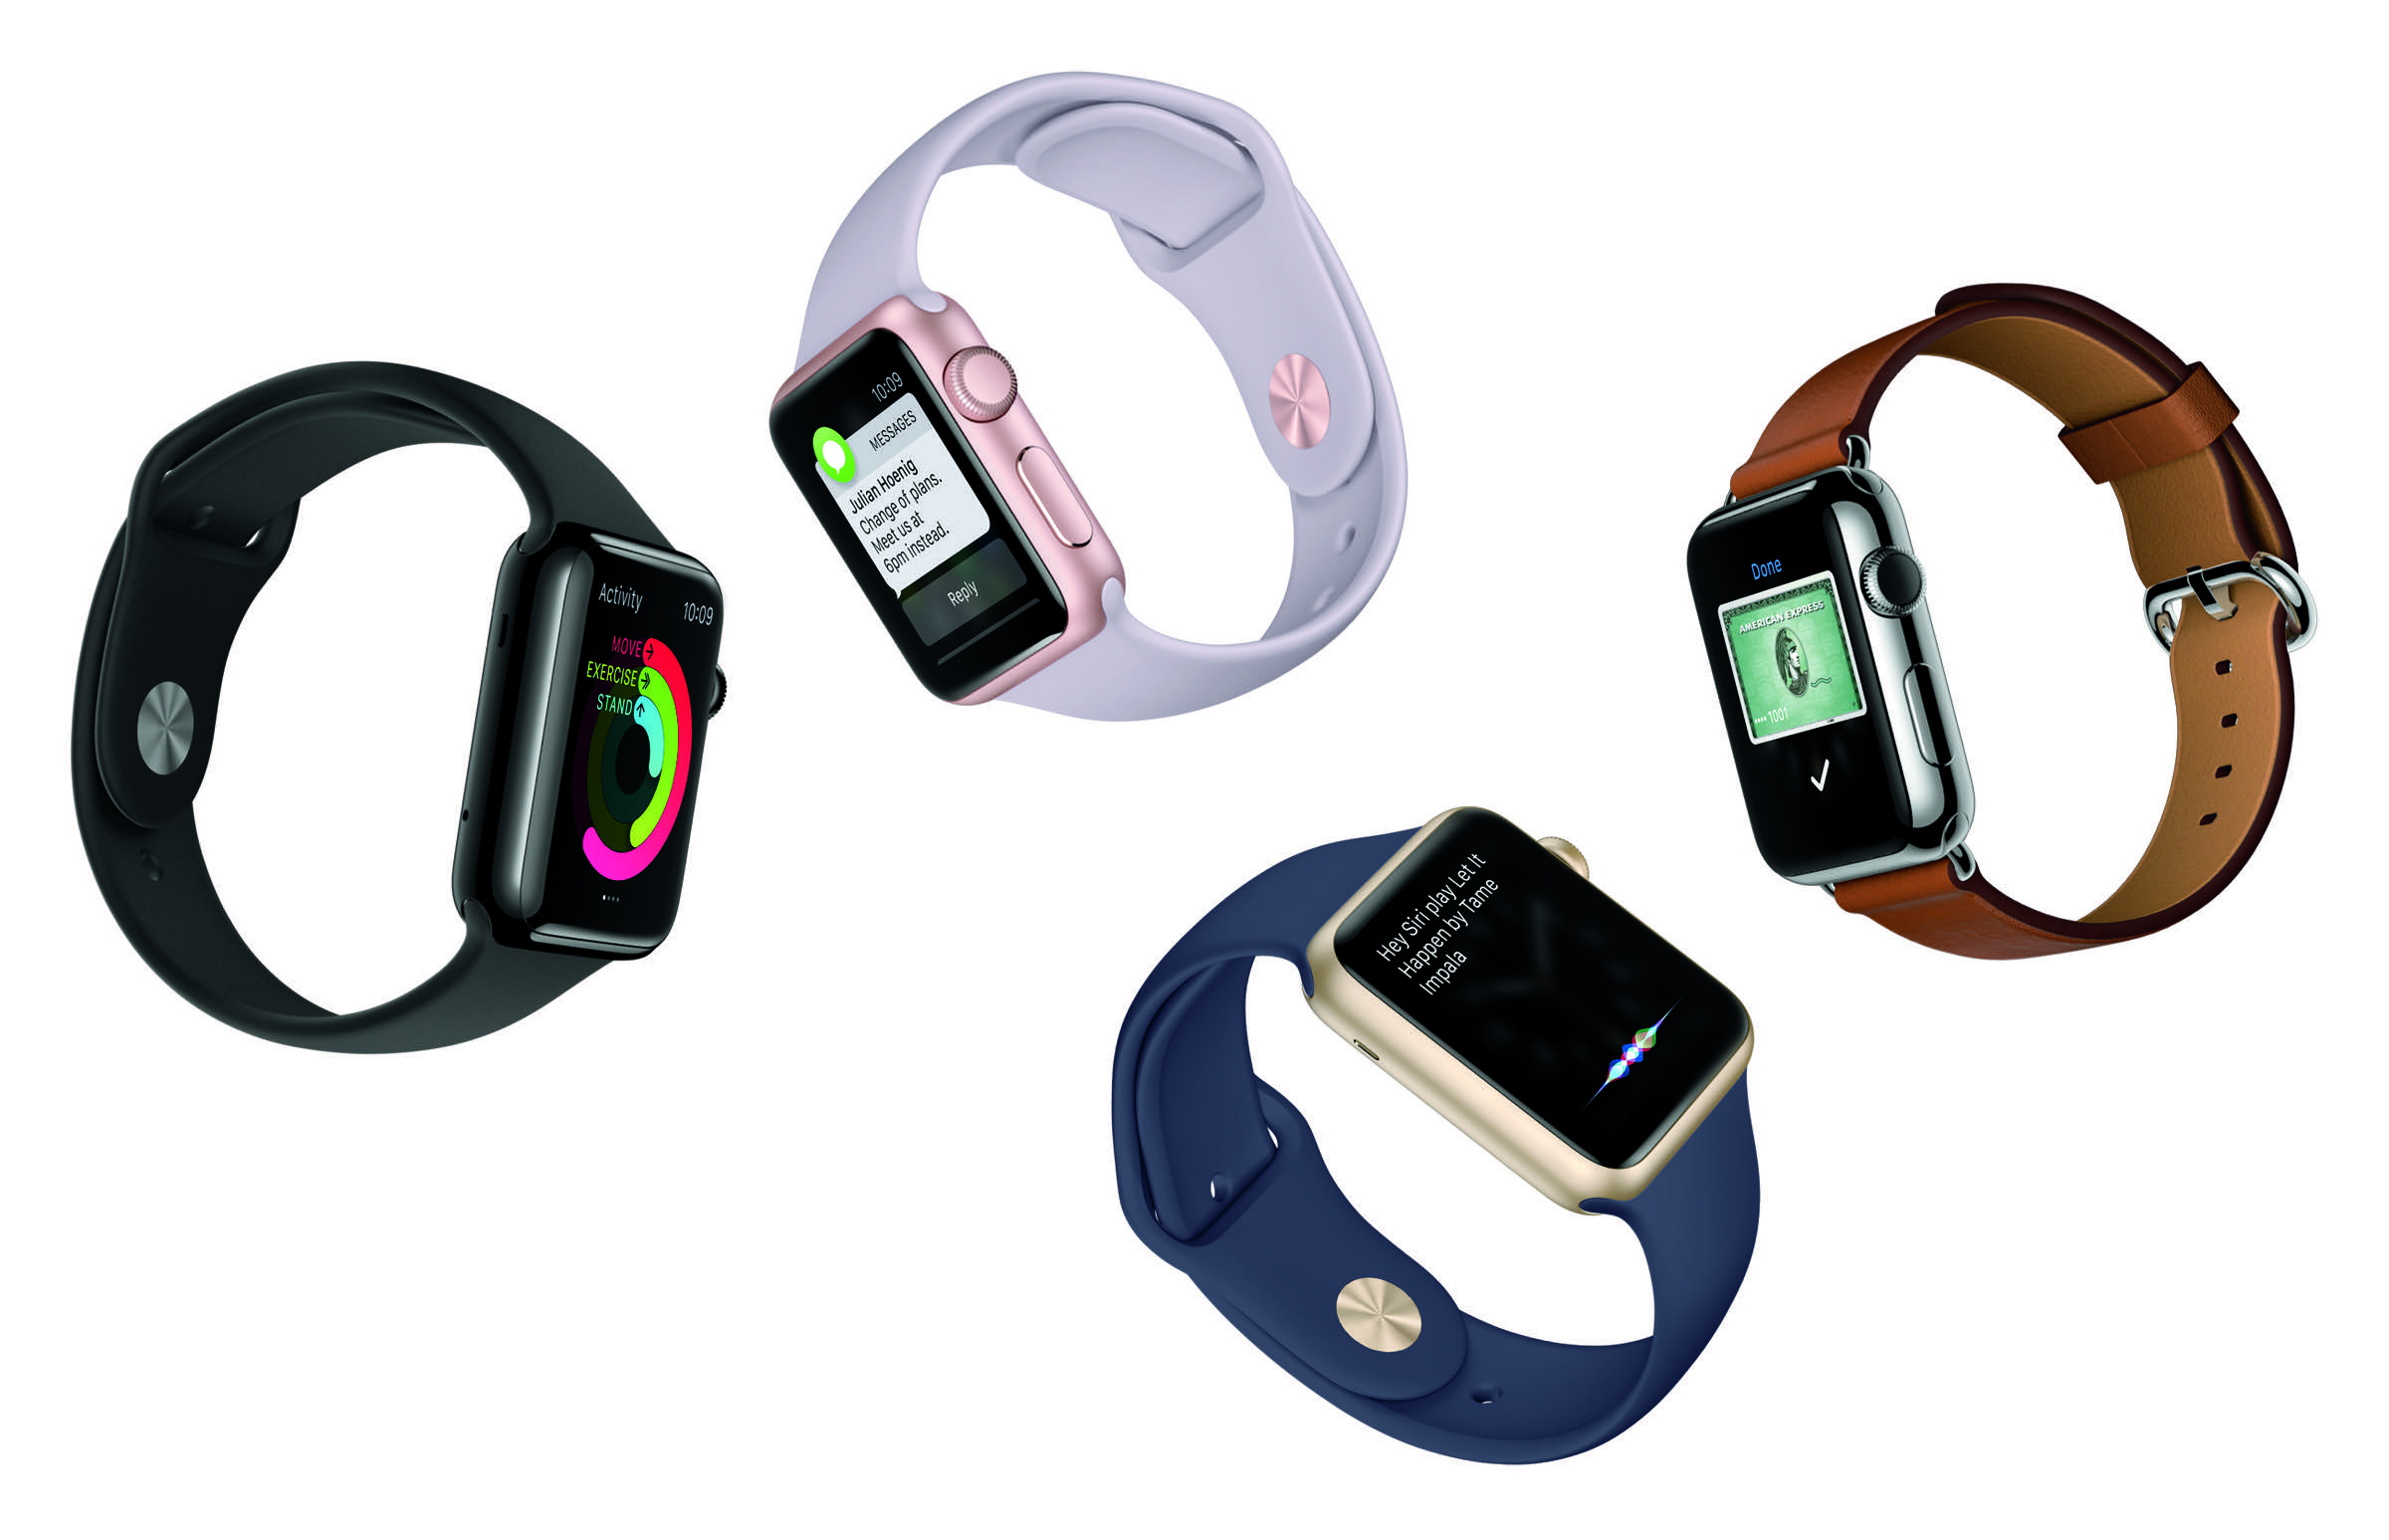 AppleWatch-Tumbles-4-Up-PRINT